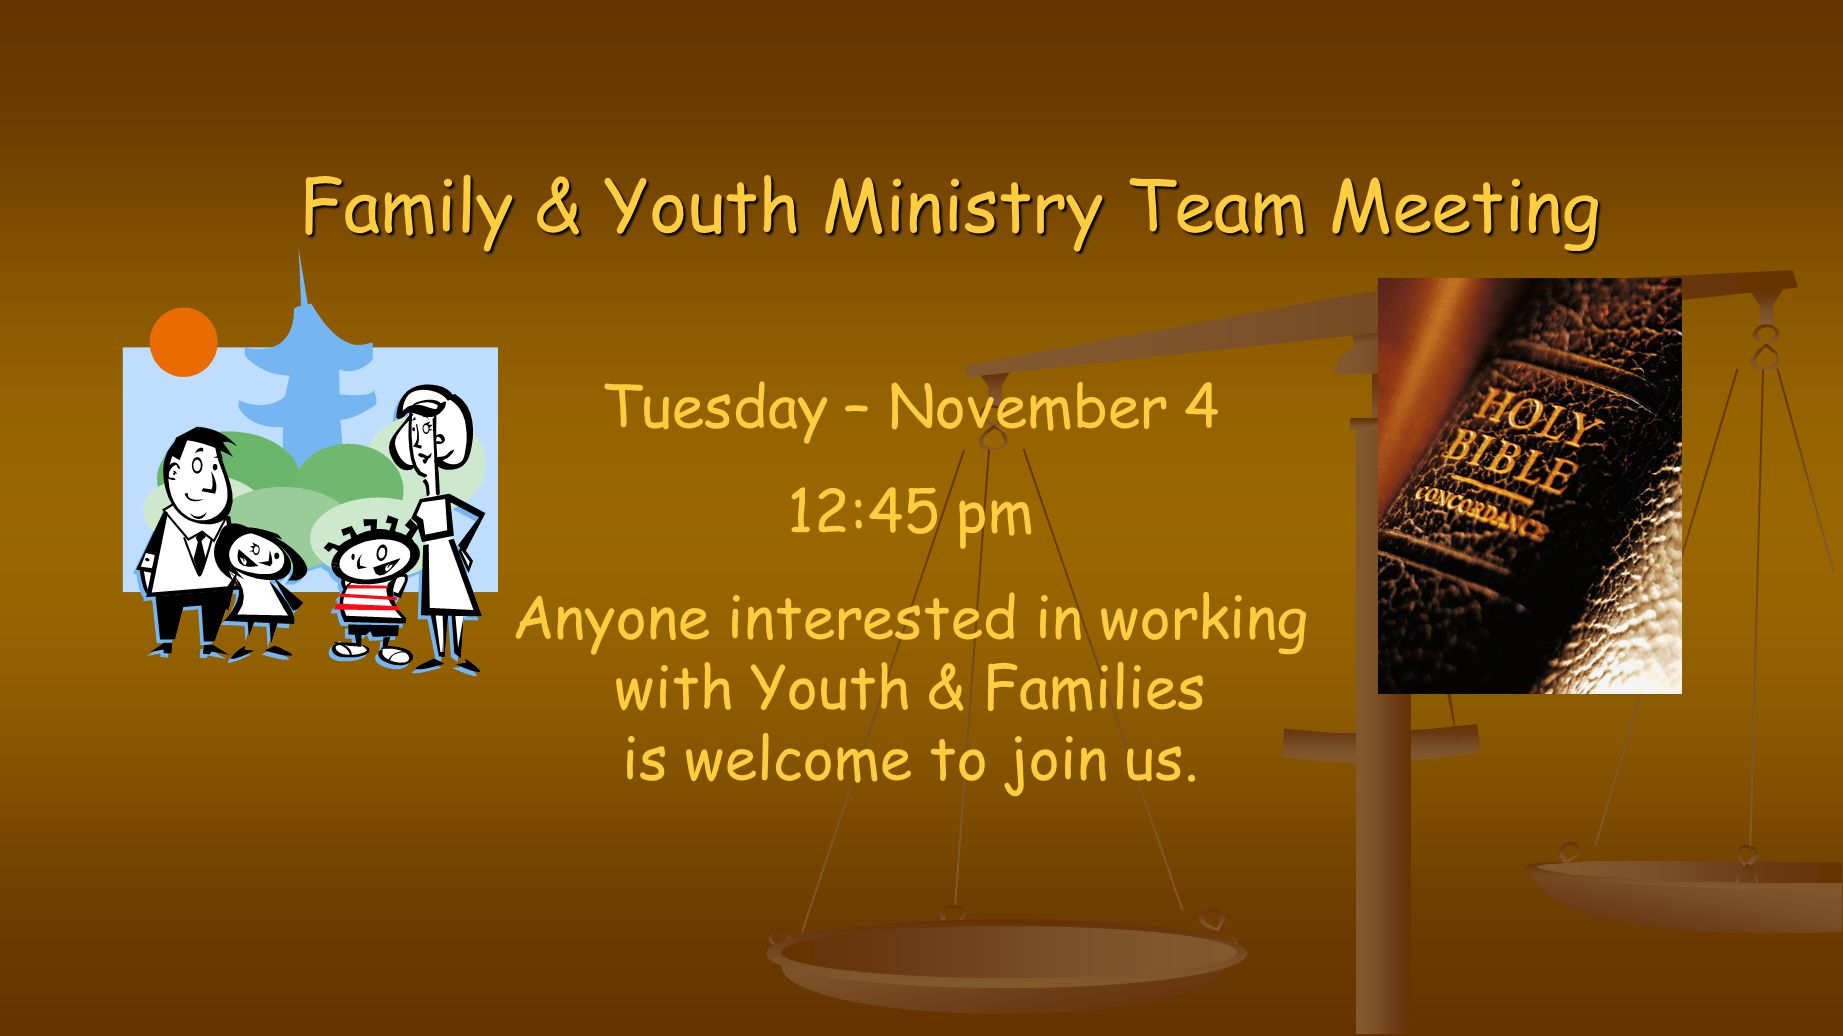 Family & Youth Ministry Team Meeting Tuesday – November 4 12:45 pm Anyone interested in working with Youth & Families is welcome to join us.